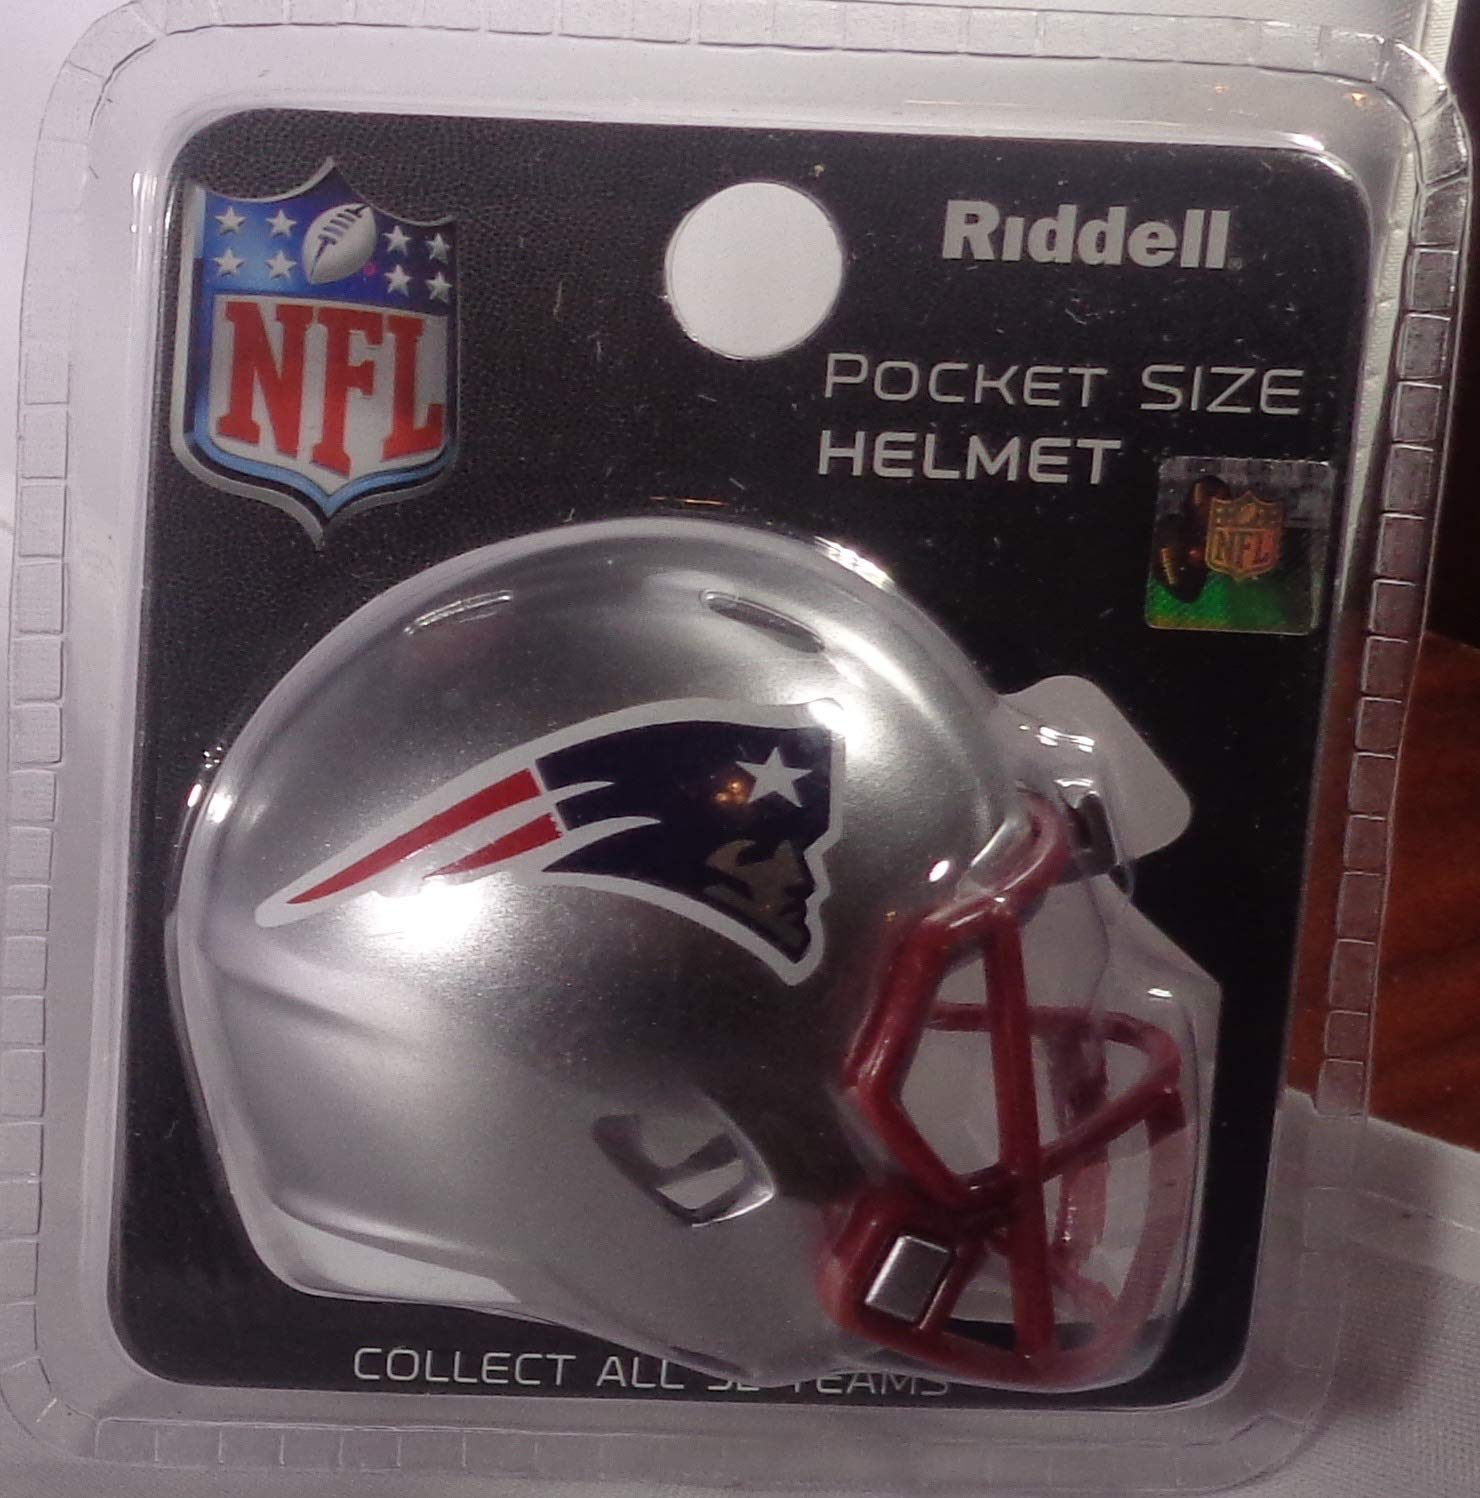 Riddell New England Patriots Originalnachbildung Speed Pocket Pro Micro/Kamerahandys/Mini Football Helm 095855320656